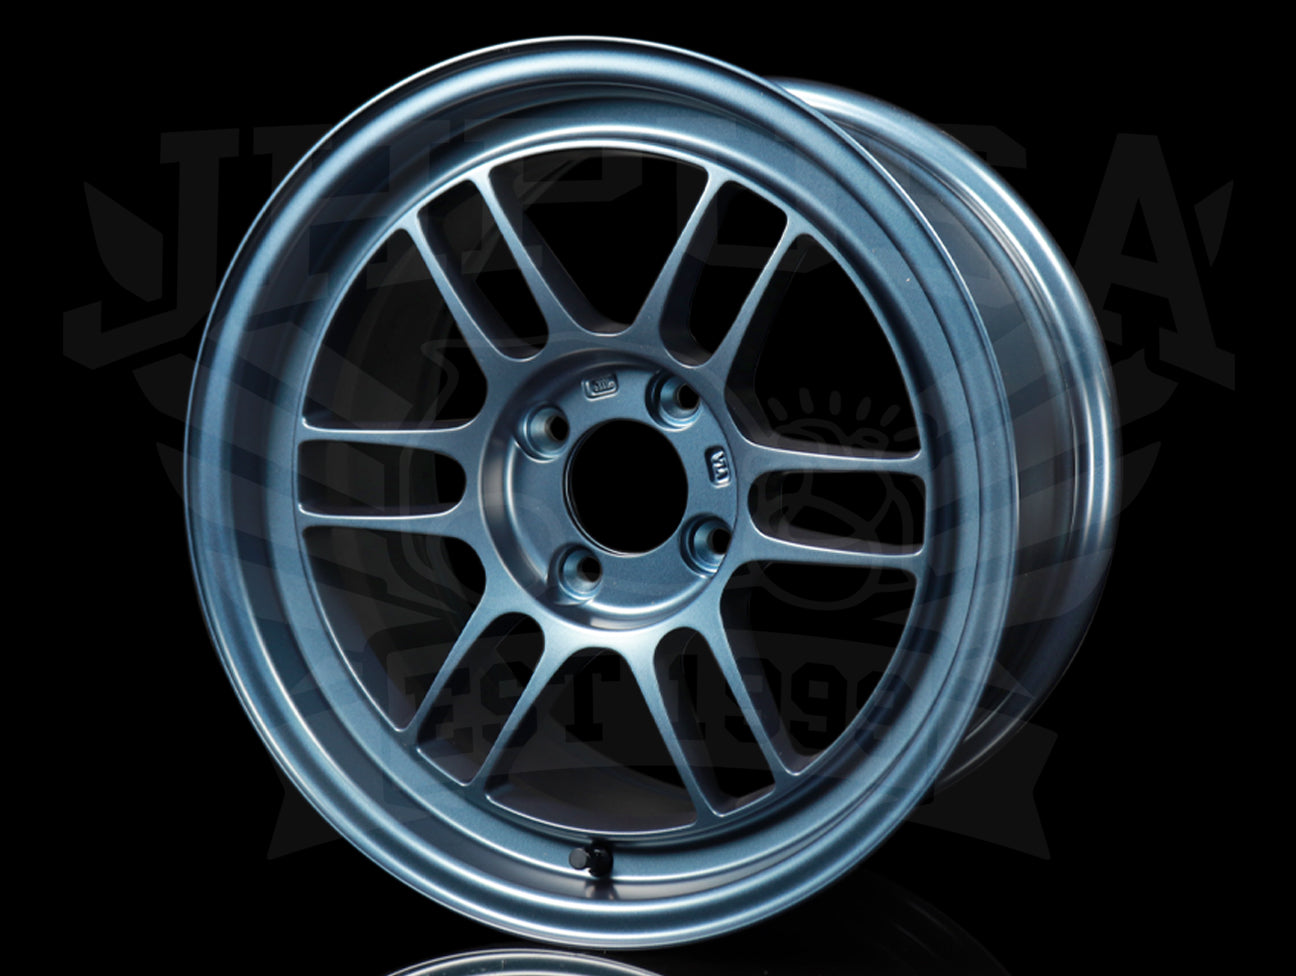 Enkei RPF1 Wheels - Matte Blue 15x8 / 4x100 / +28